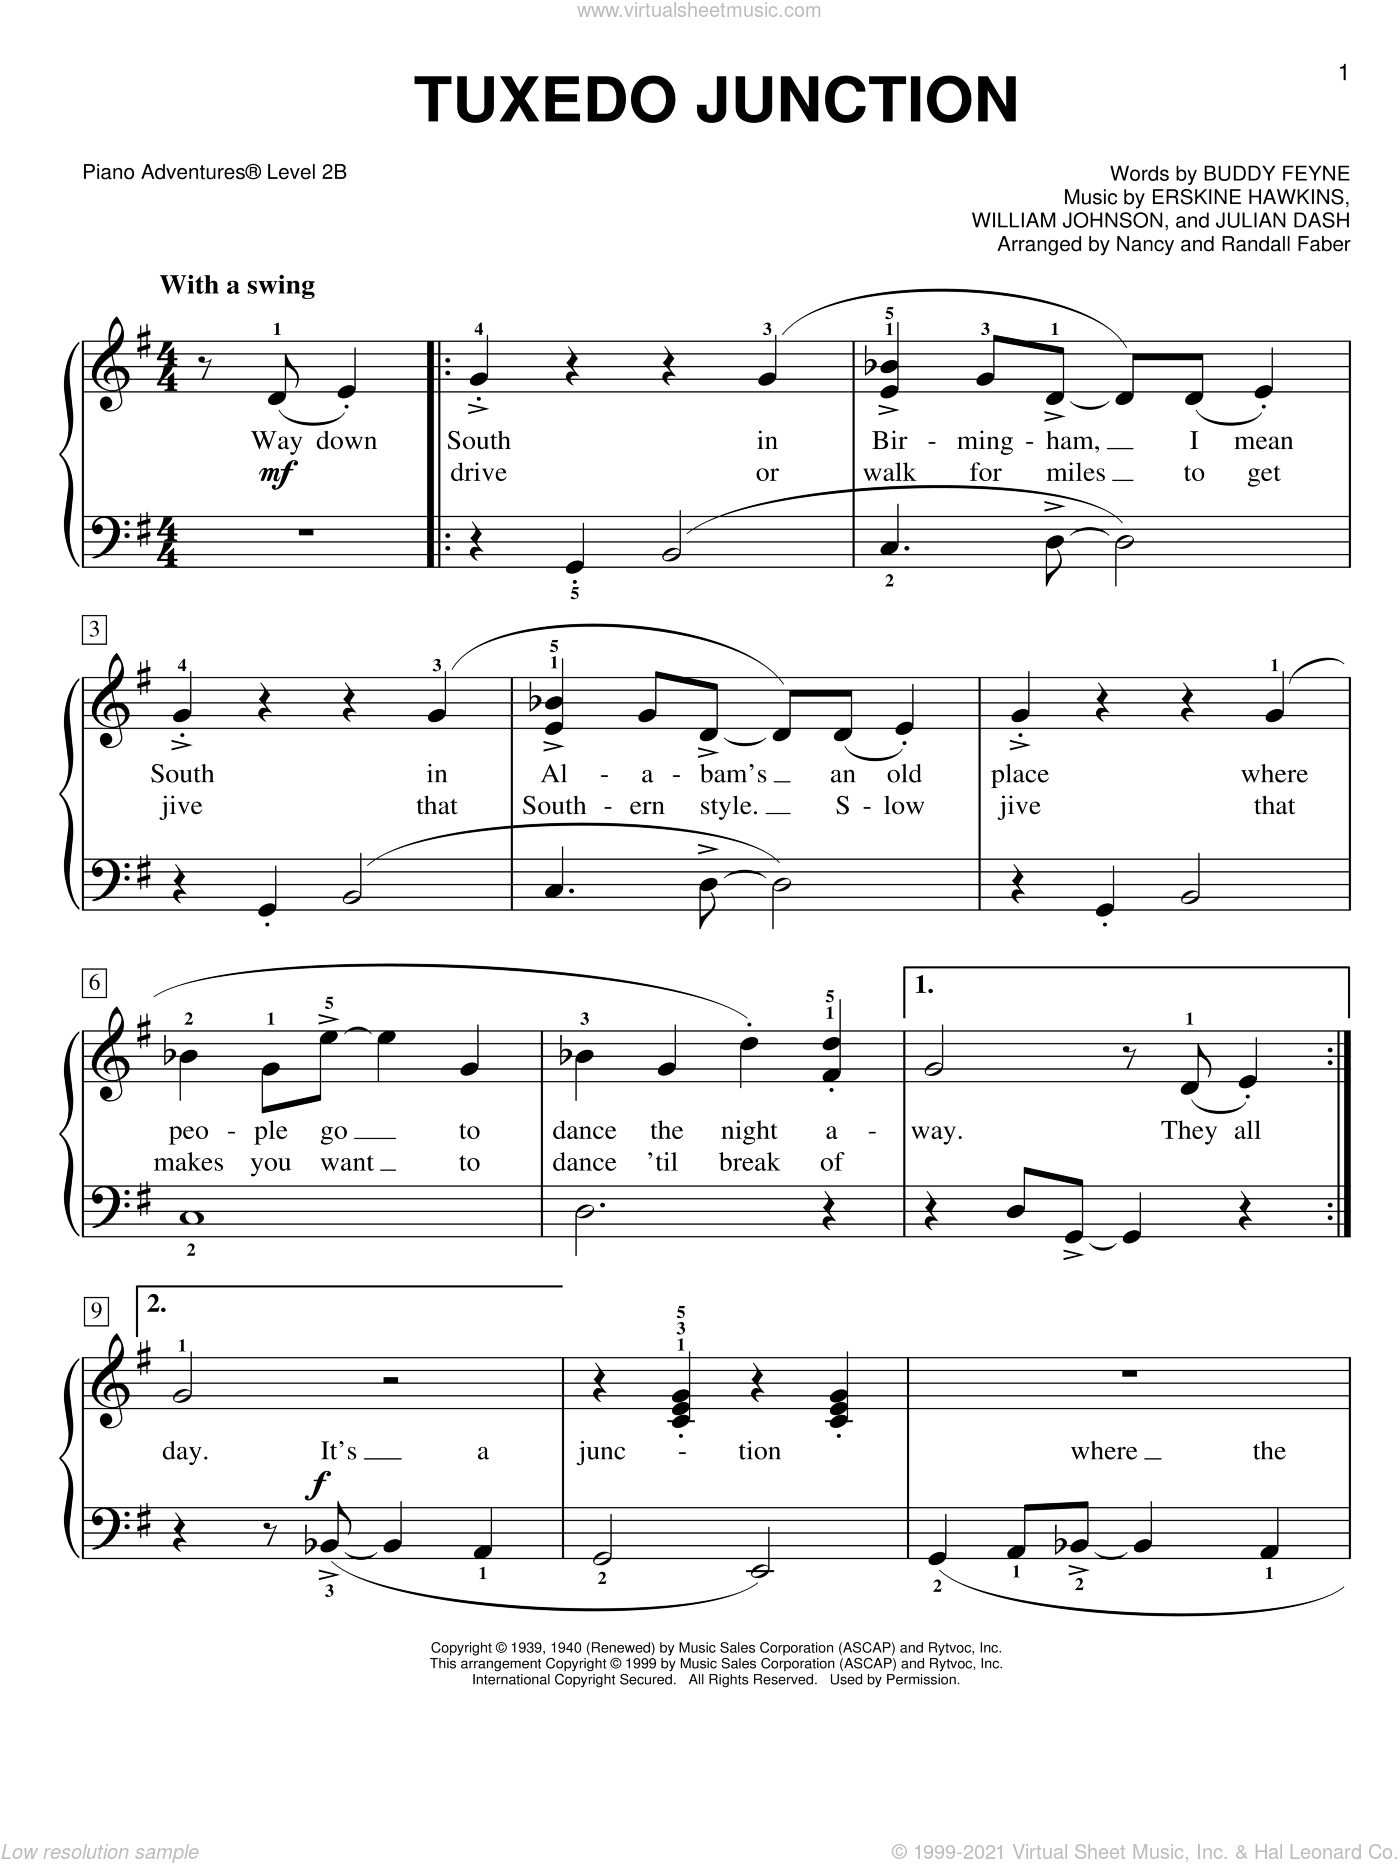 Tuxedo Junction sheet music for piano solo by Glenn Miller, Buddy Feyne, Erskine Hawkins, Julian Dash, Nancy and Randall Faber and William Johnson, intermediate/advanced skill level